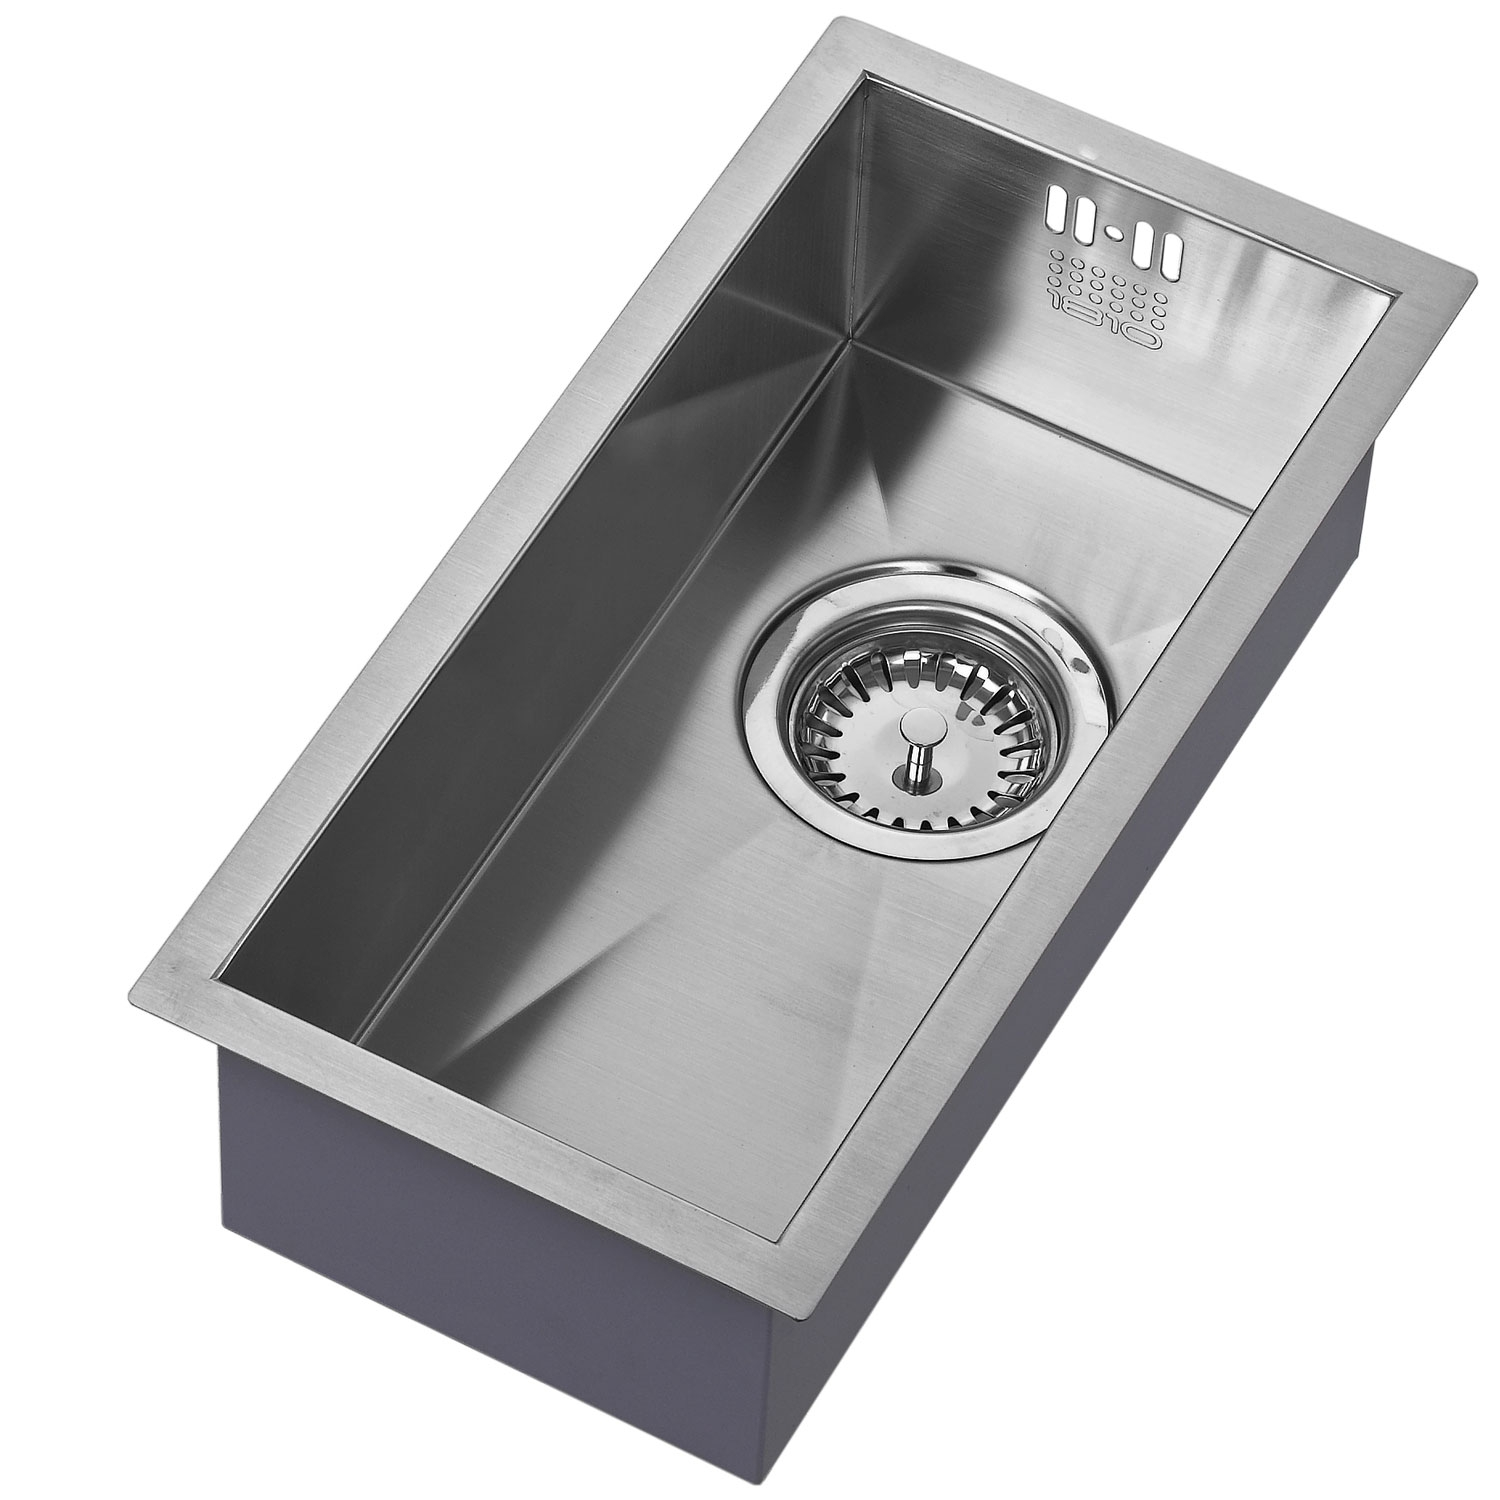 The 1810 Company Zenuno 180U 1.0 Bowl Kitchen Sink - Stainless Steel-0